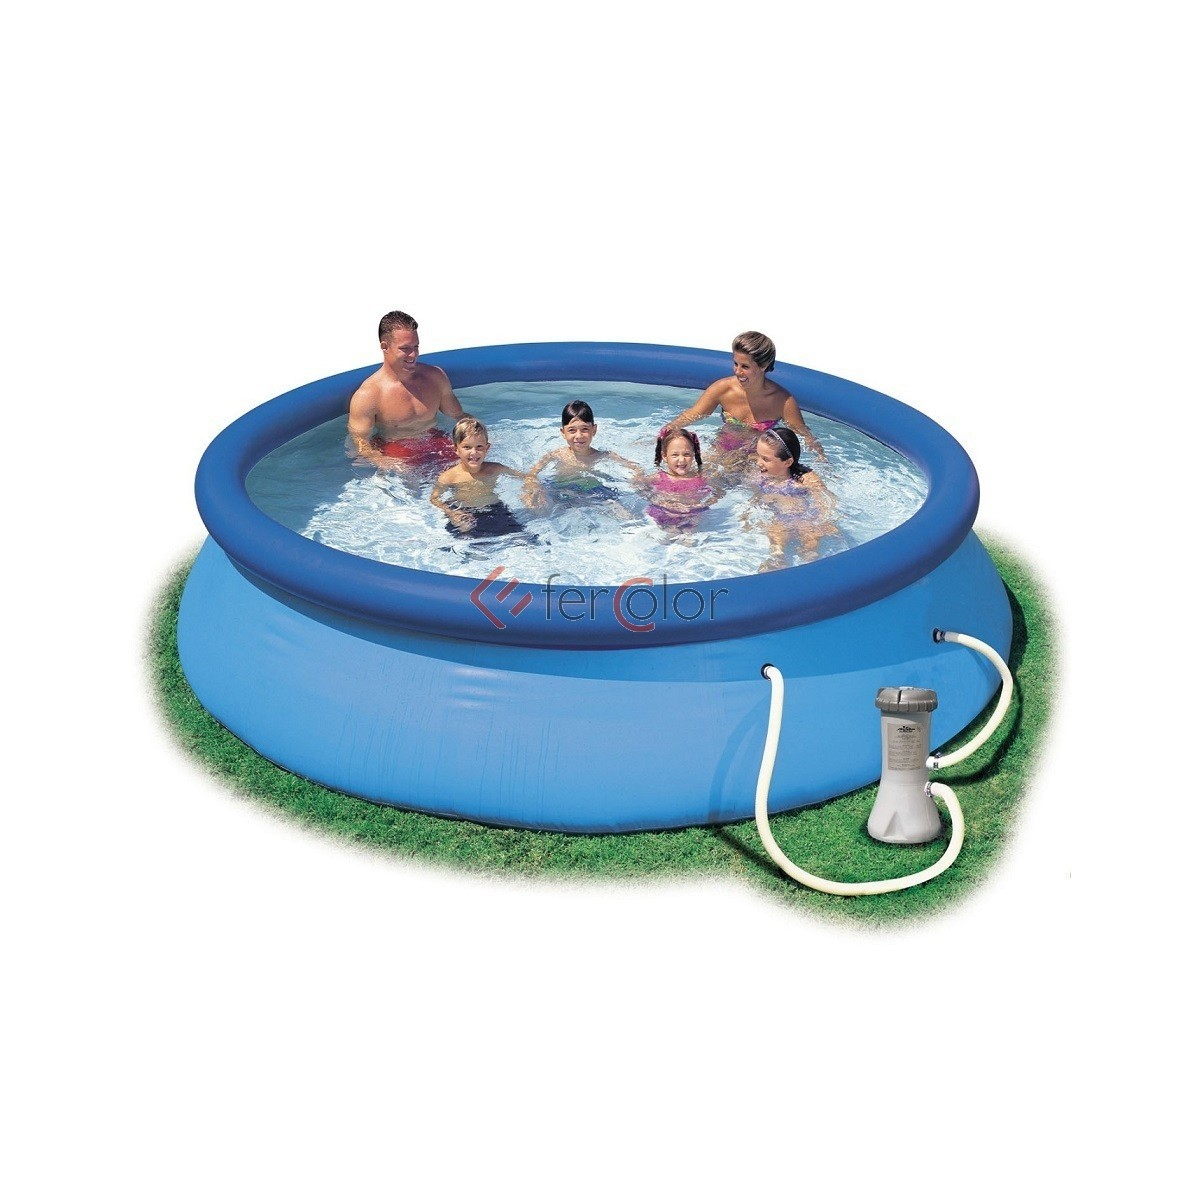 Intex Piscinas Acessorios Piscina Intex Easy Set 366x76 Tonda Con Pompa Filtro